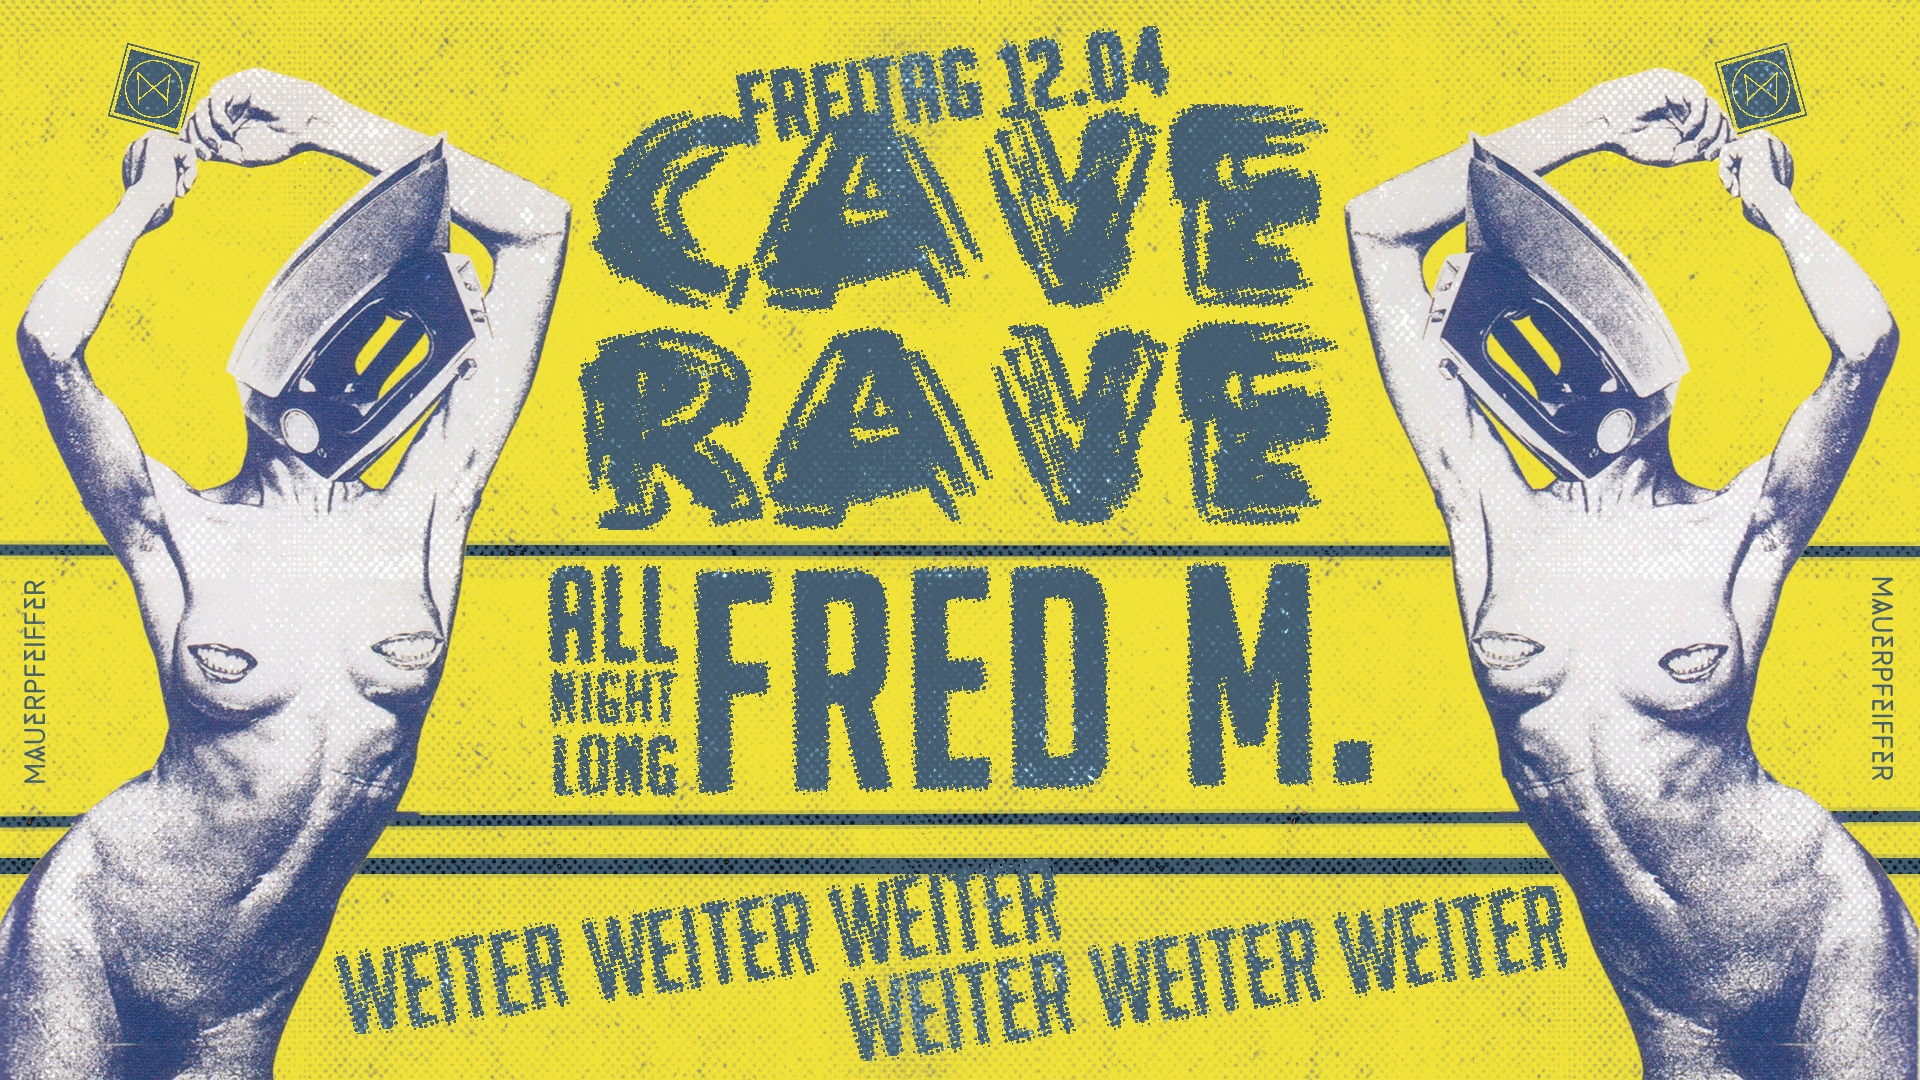 CAVE RAVE - Fred M. all night long